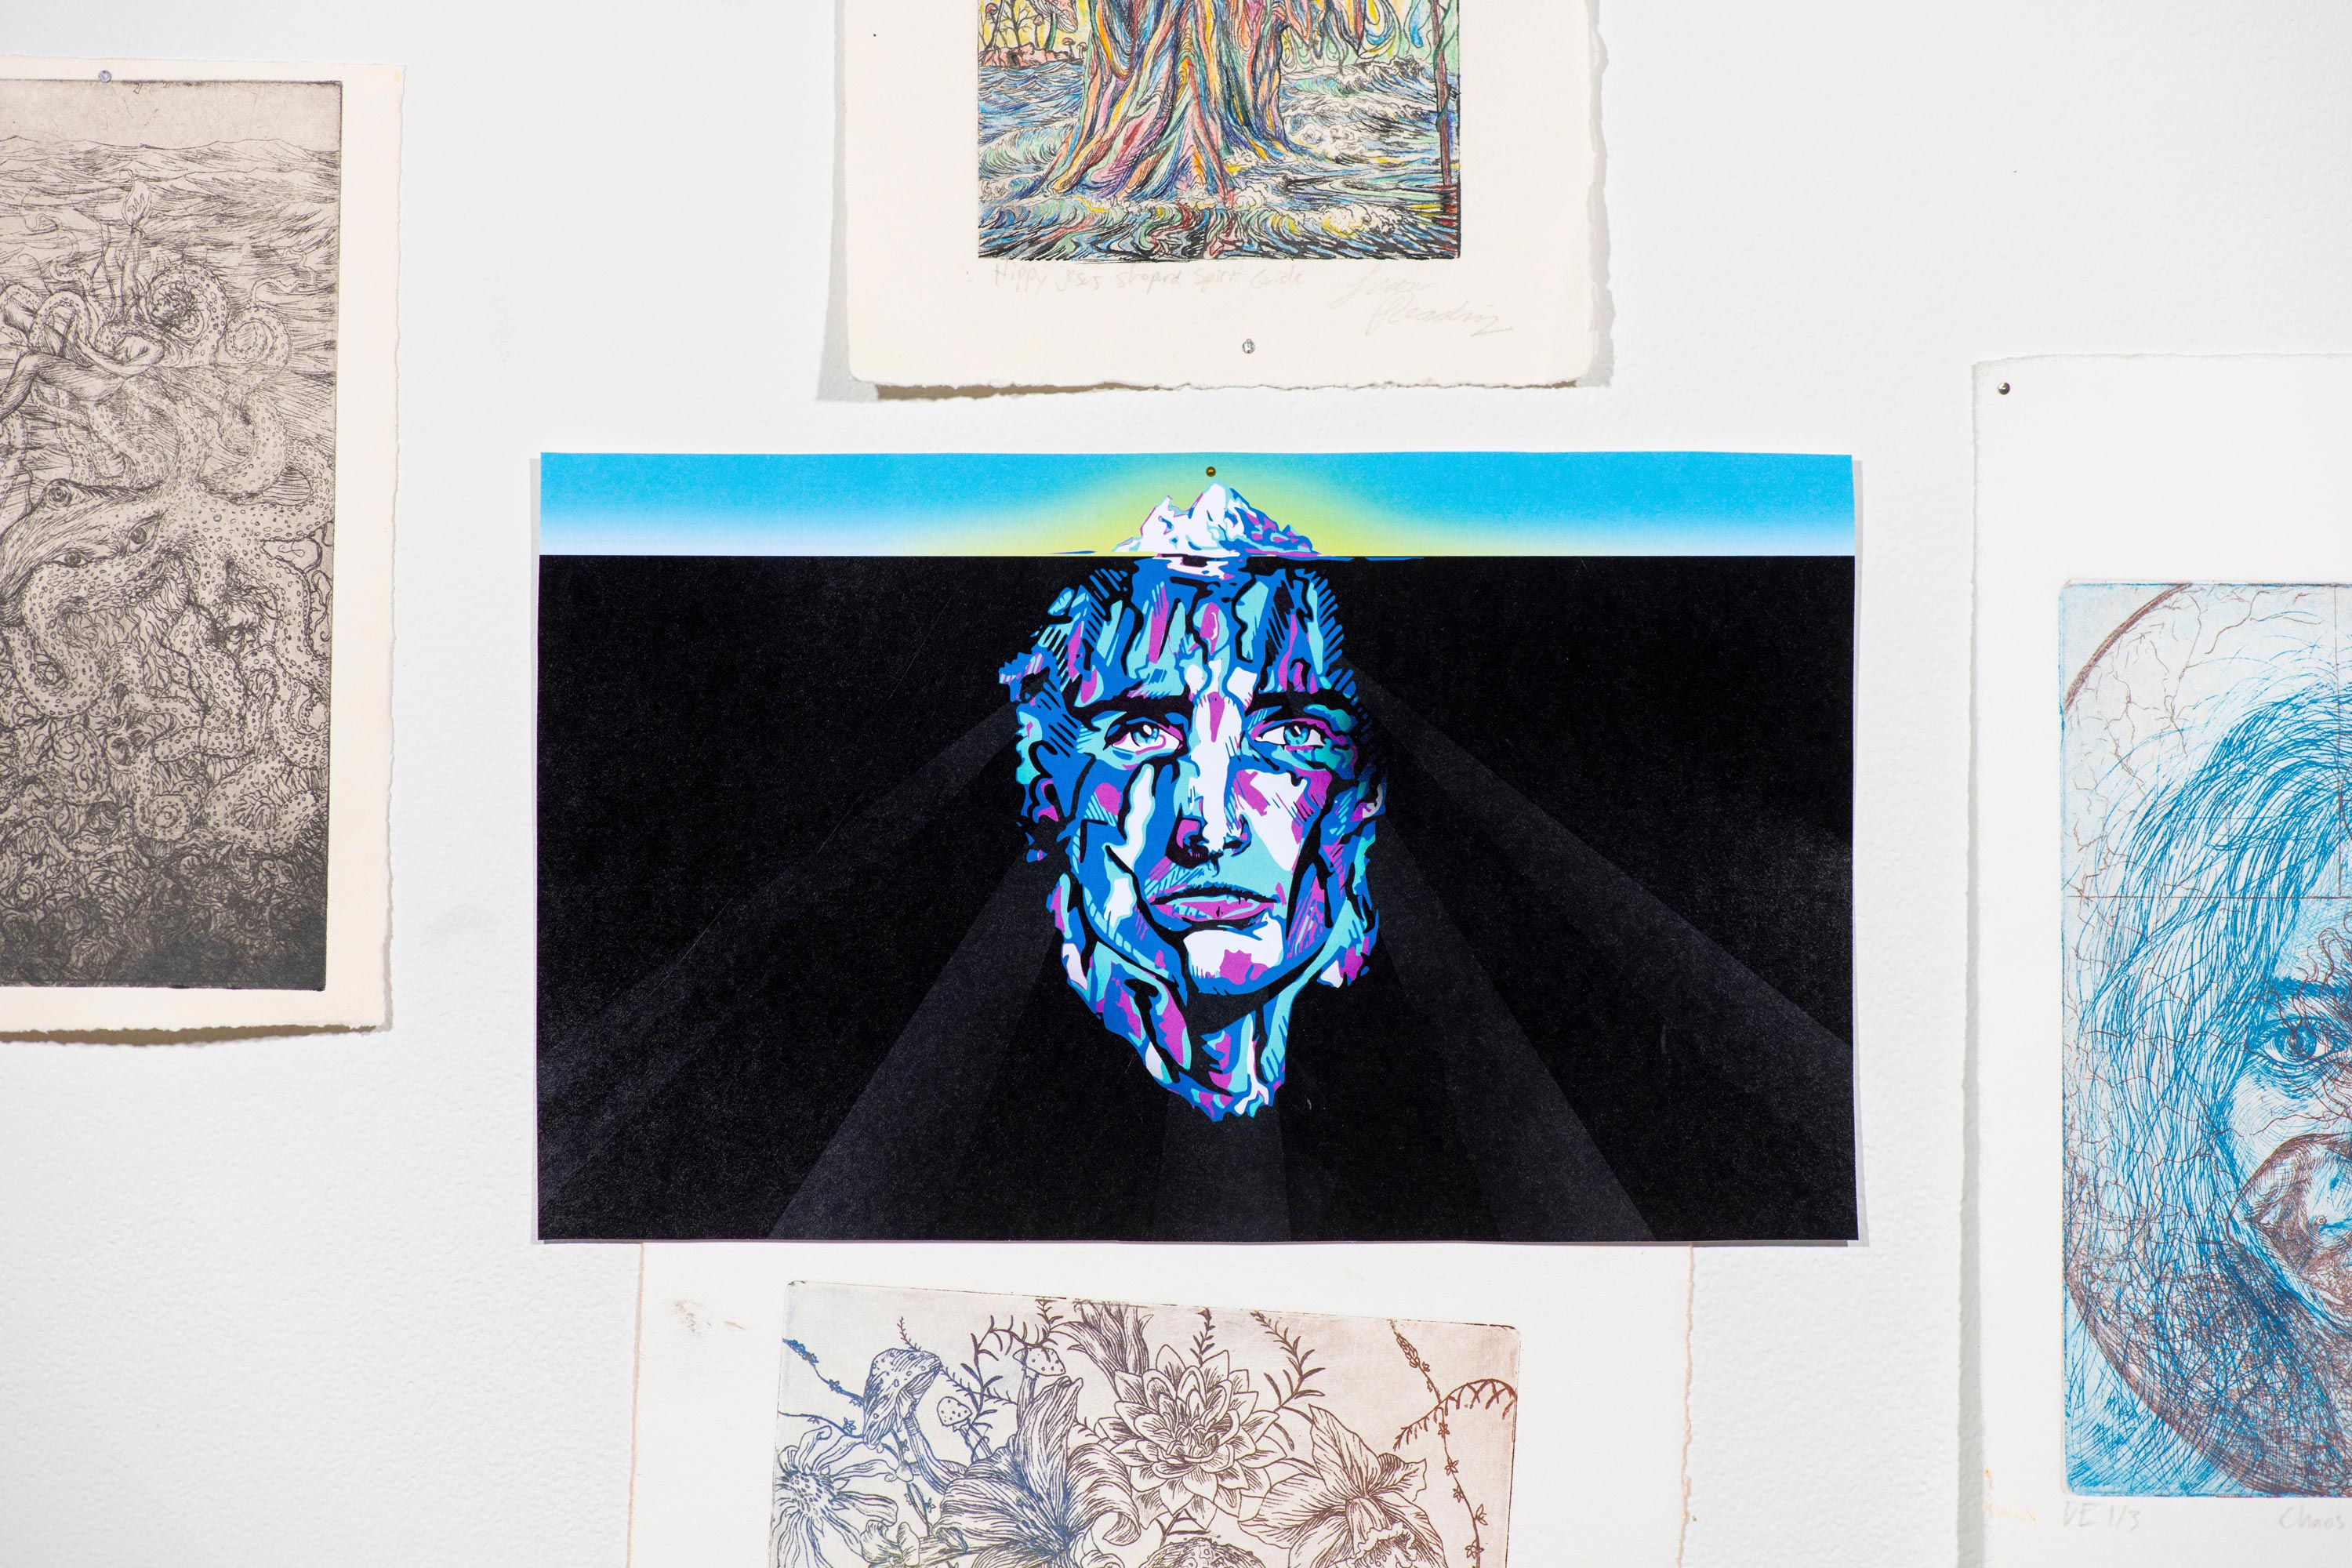 Suite of Intaglio Prints by Liam Reading [Intaglio Print, Watercolor, and Acrylic 2017-2018]